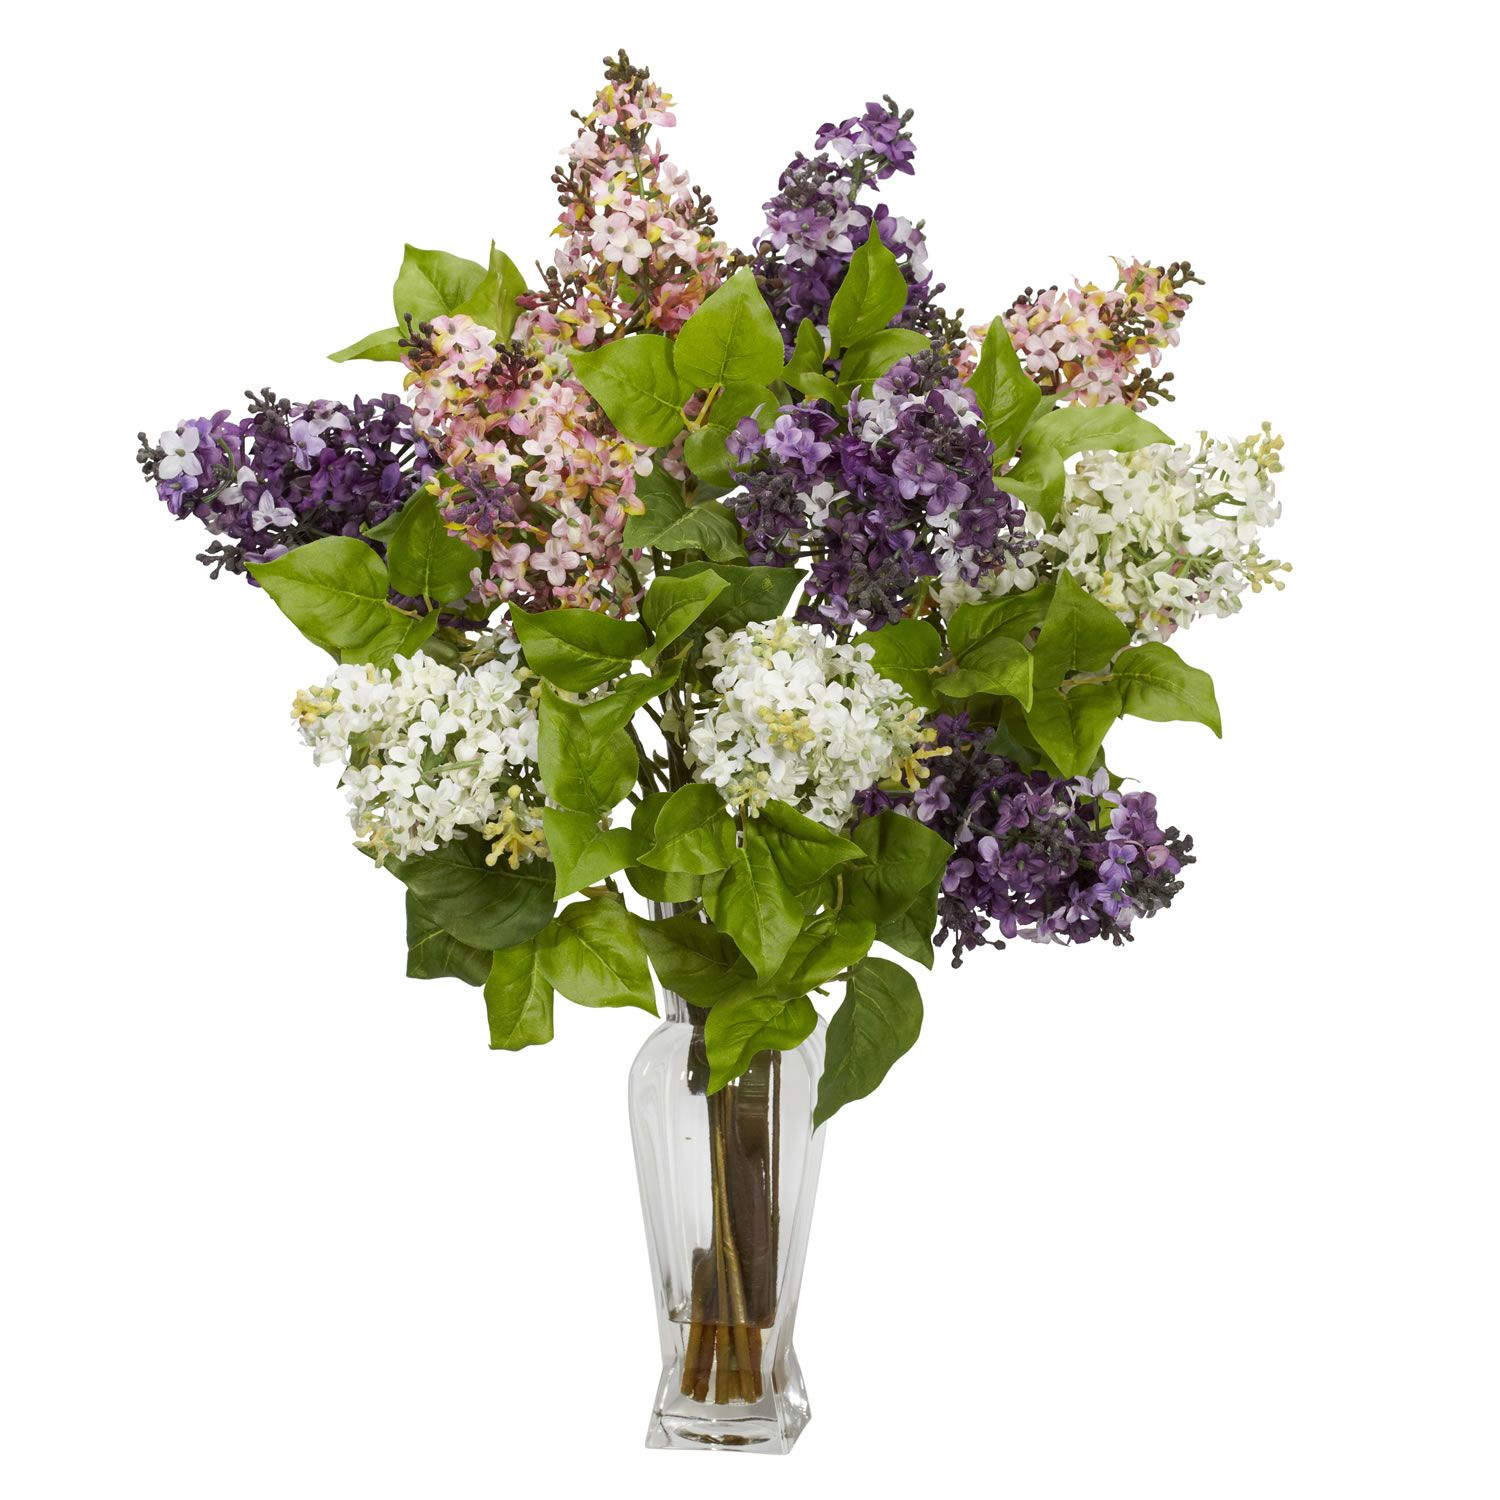 Flower Arrangements Ideas Home Artificial Florals Silk Arrangements